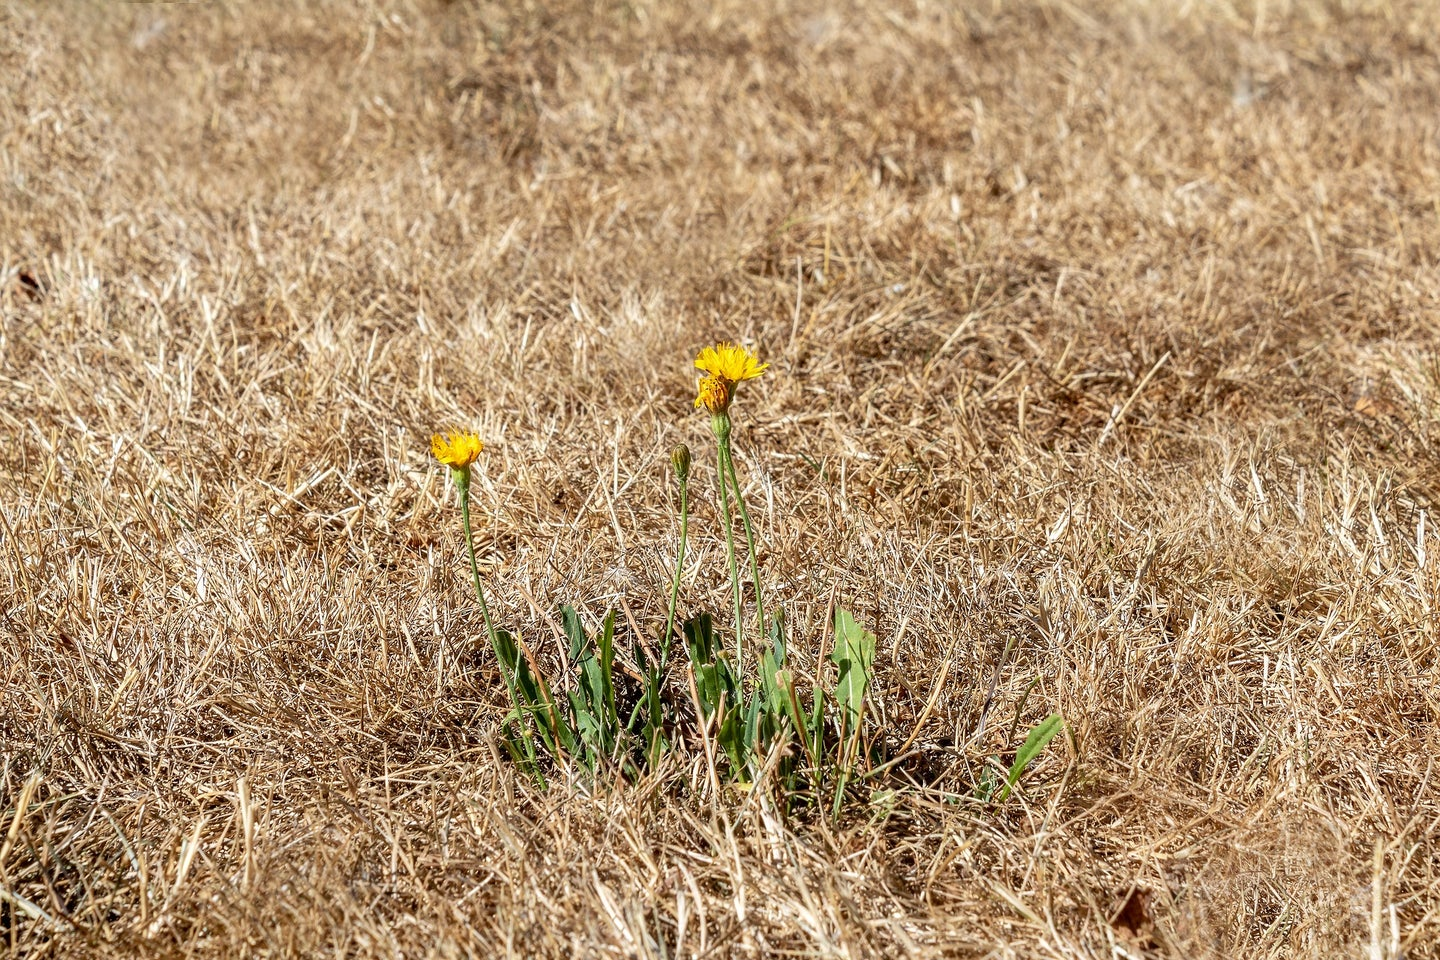 Dried grass and flowers in a drought and heat wave